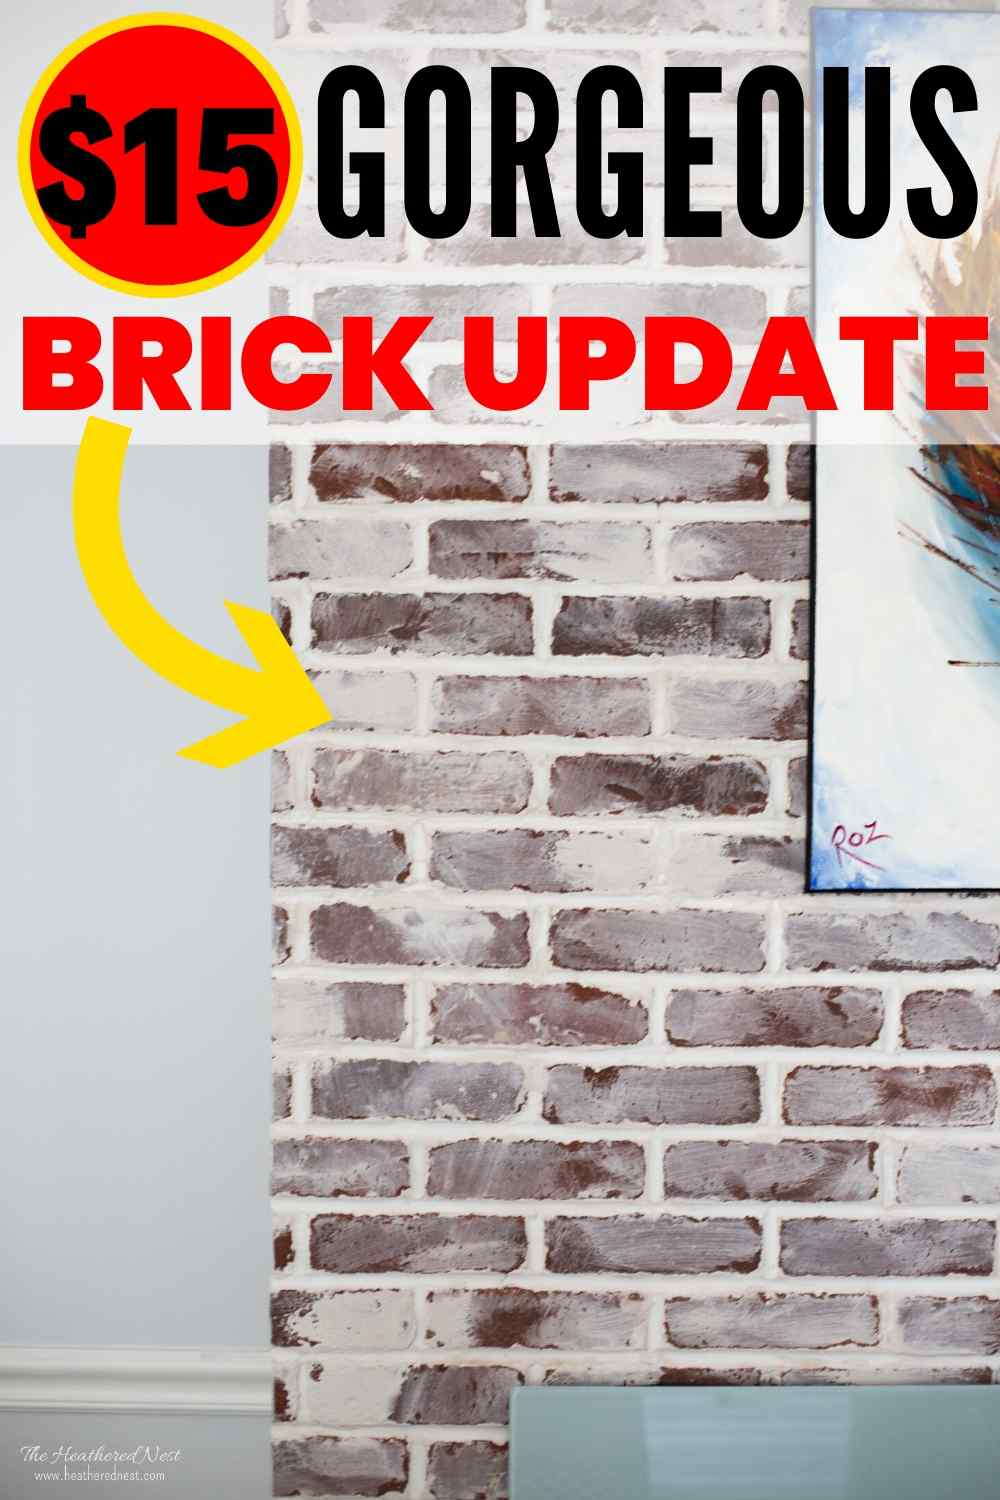 Update Your Brick Fireplace for $15! Here's how!